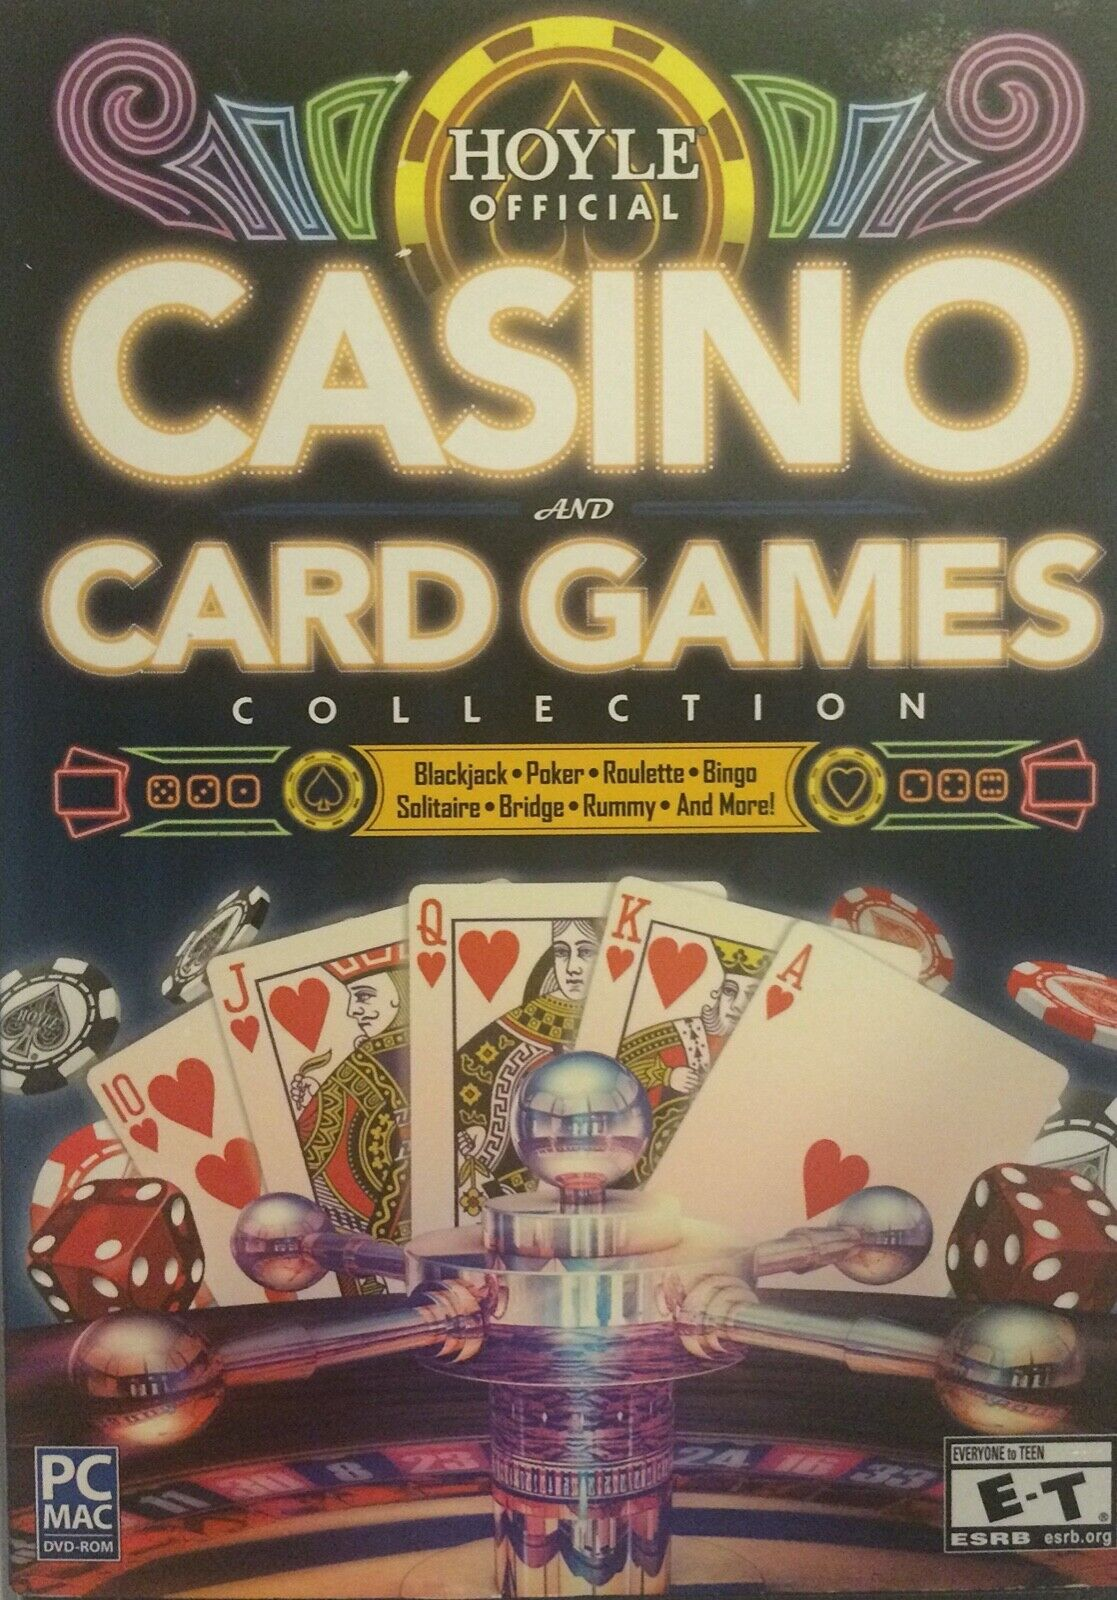 Hoyle Official Casino And Card Games Collection -Card PC Game NEW 100 GAMES - $9.99